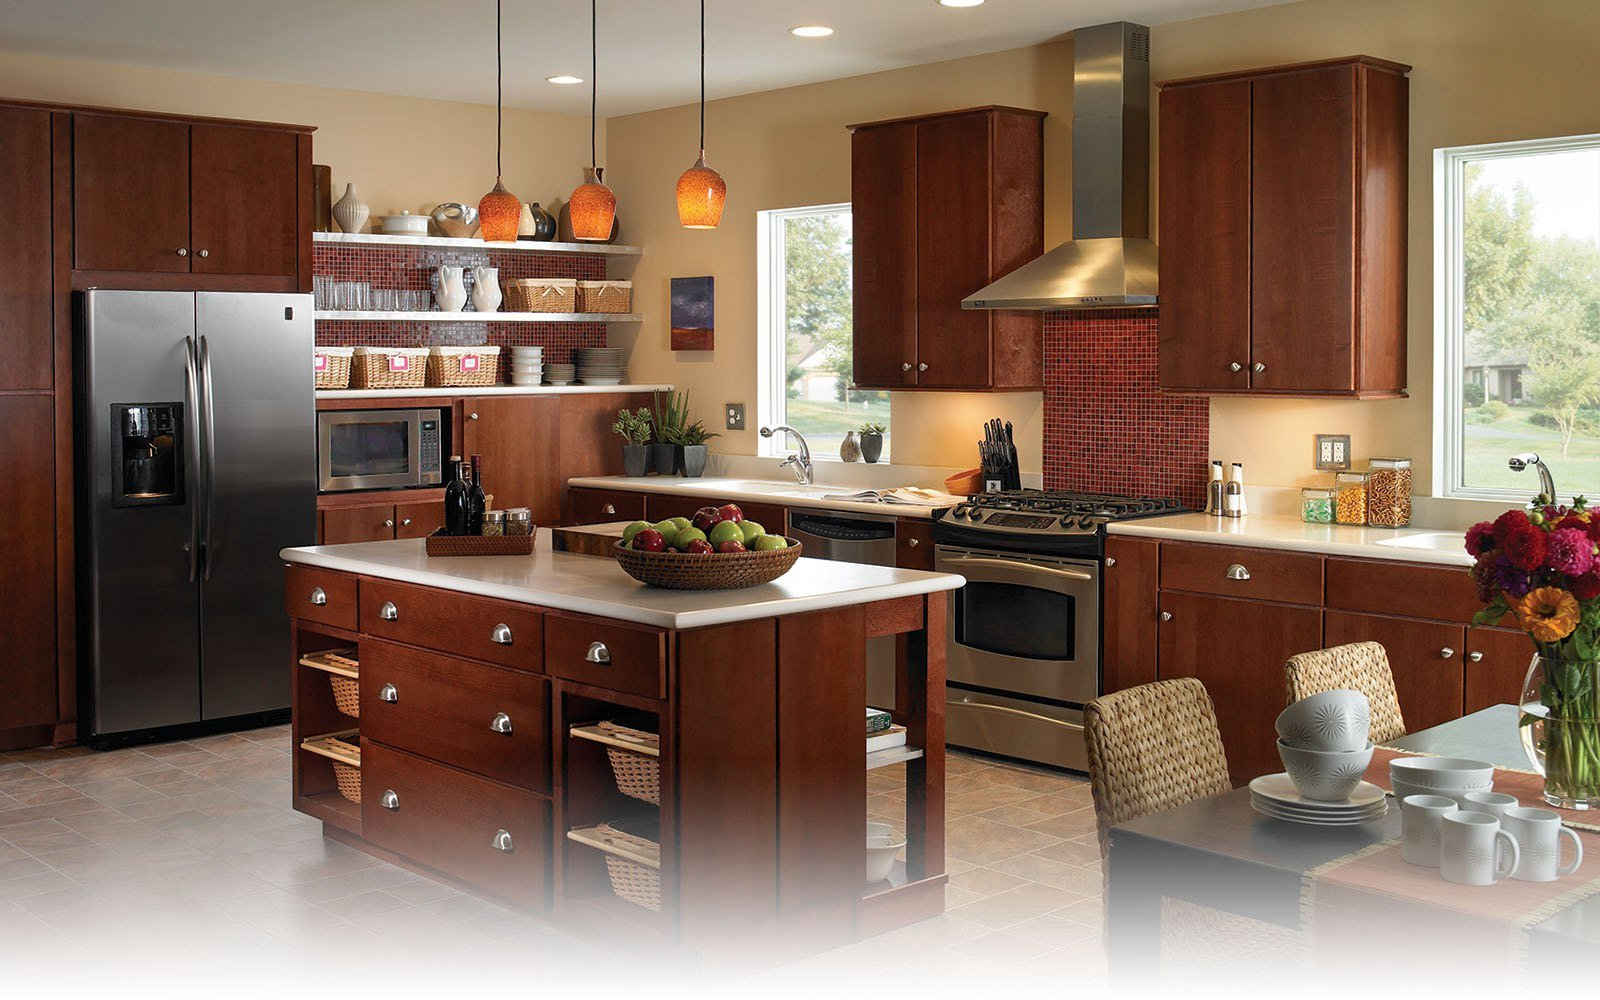 Marvelous Kitchen Remodels Kitchen Design Kitchen Remodels Kitchen Cabinets ... Part 9